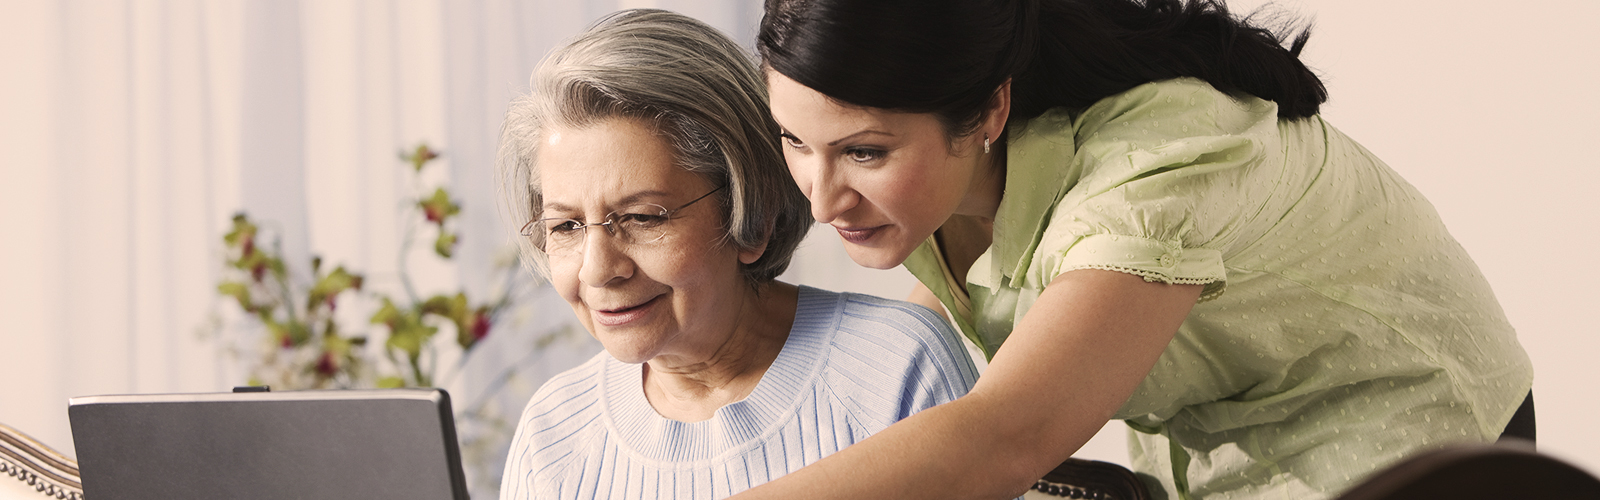 Elderly woman and young woman using the computer - how Alzheimer's affects your loved one